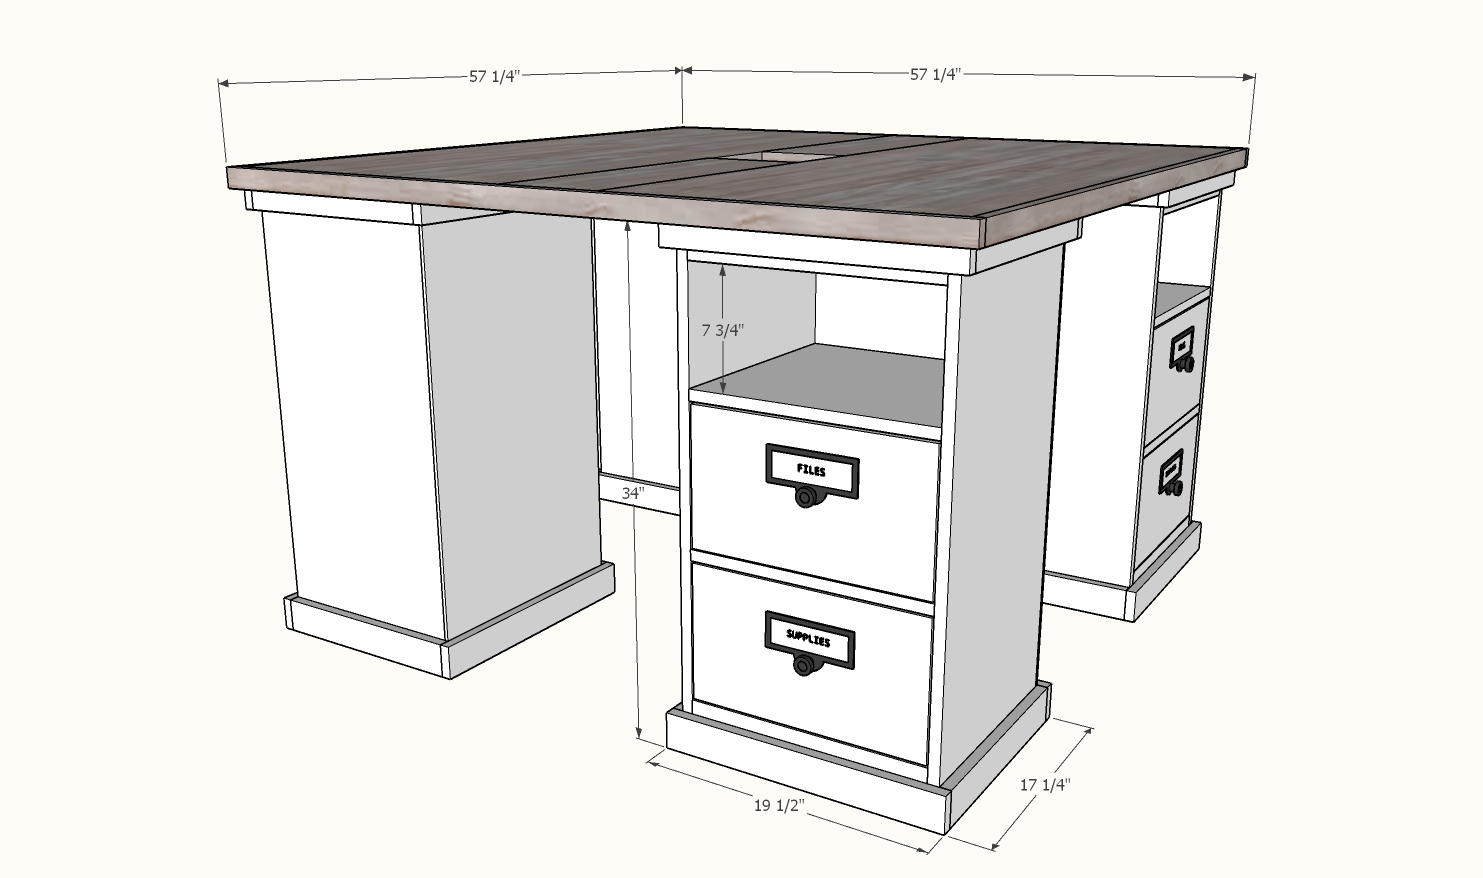 Dimensions for counter height desk pbteen mega desk